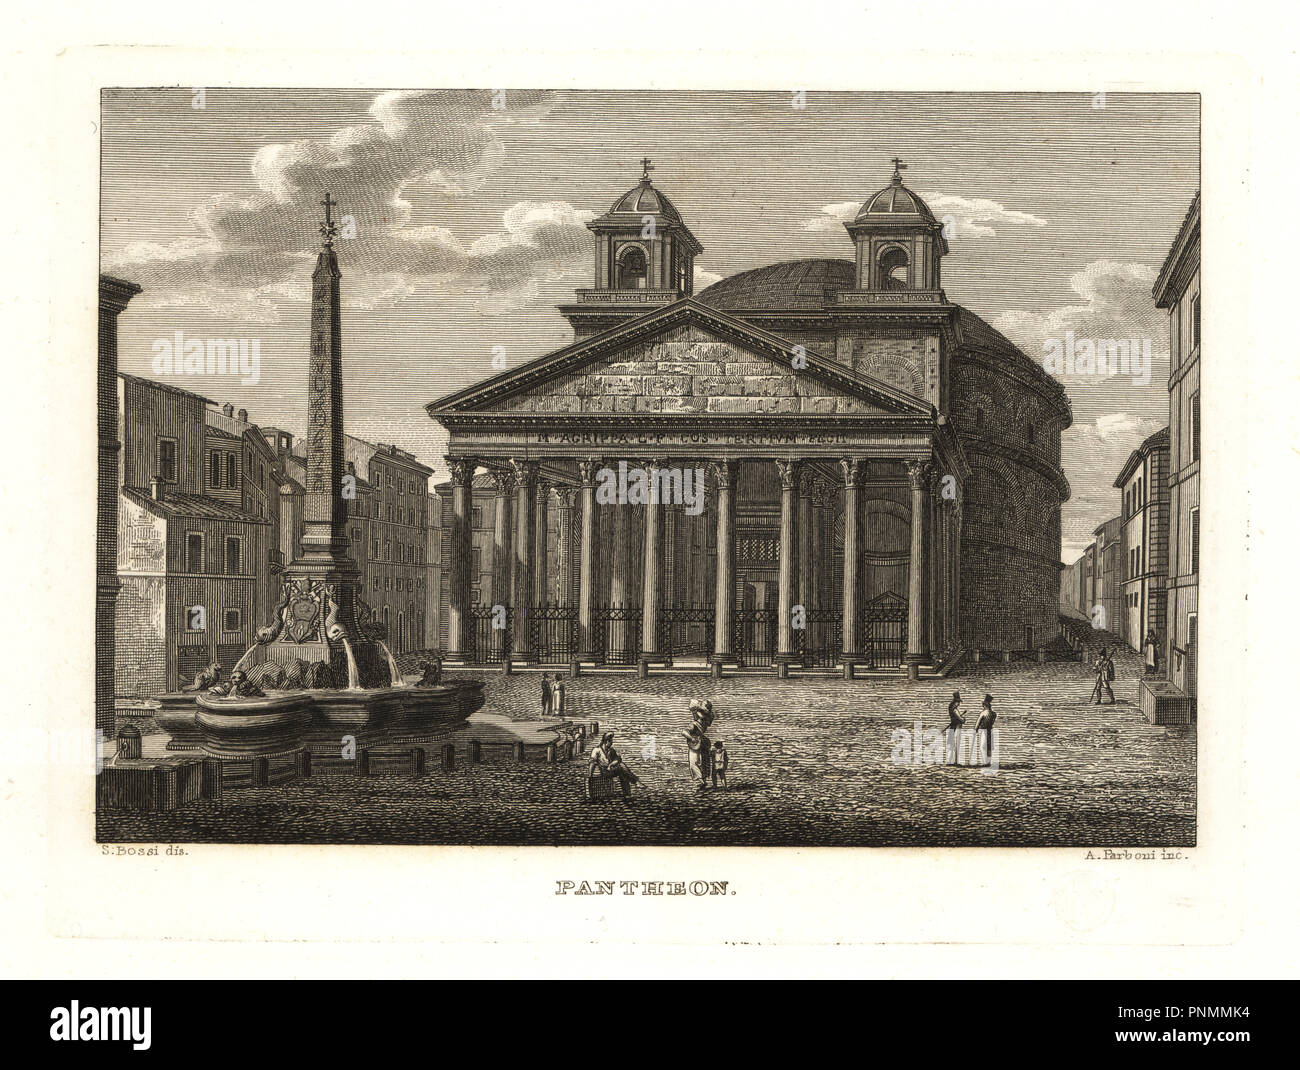 View of the Pantheon and the Fontana del Pantheon, Rome. Copperplate engraving by A. Parboni after an illustration by Sylvestro Bossi from Achille Parboni's New Collection of Principal Views Ancient and Modern of the City of Rome, 1830. - Stock Image